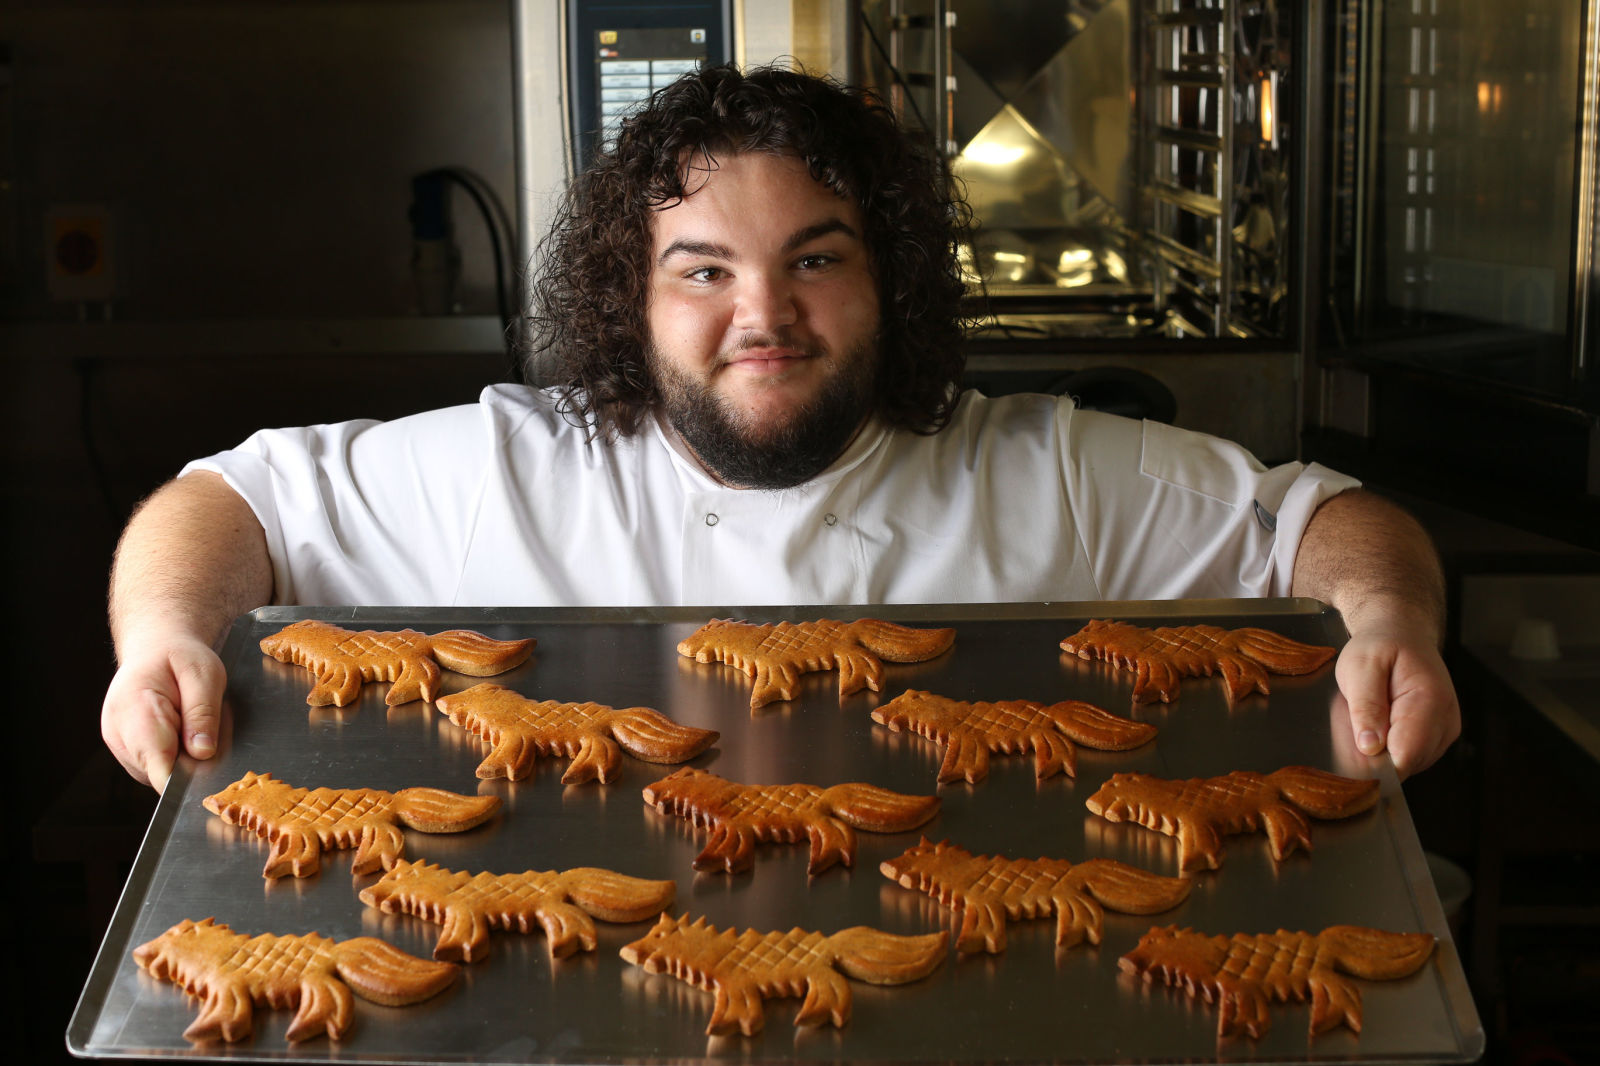 Hot Pie has His Own Bakery, 'You Know Nothing John Dough'